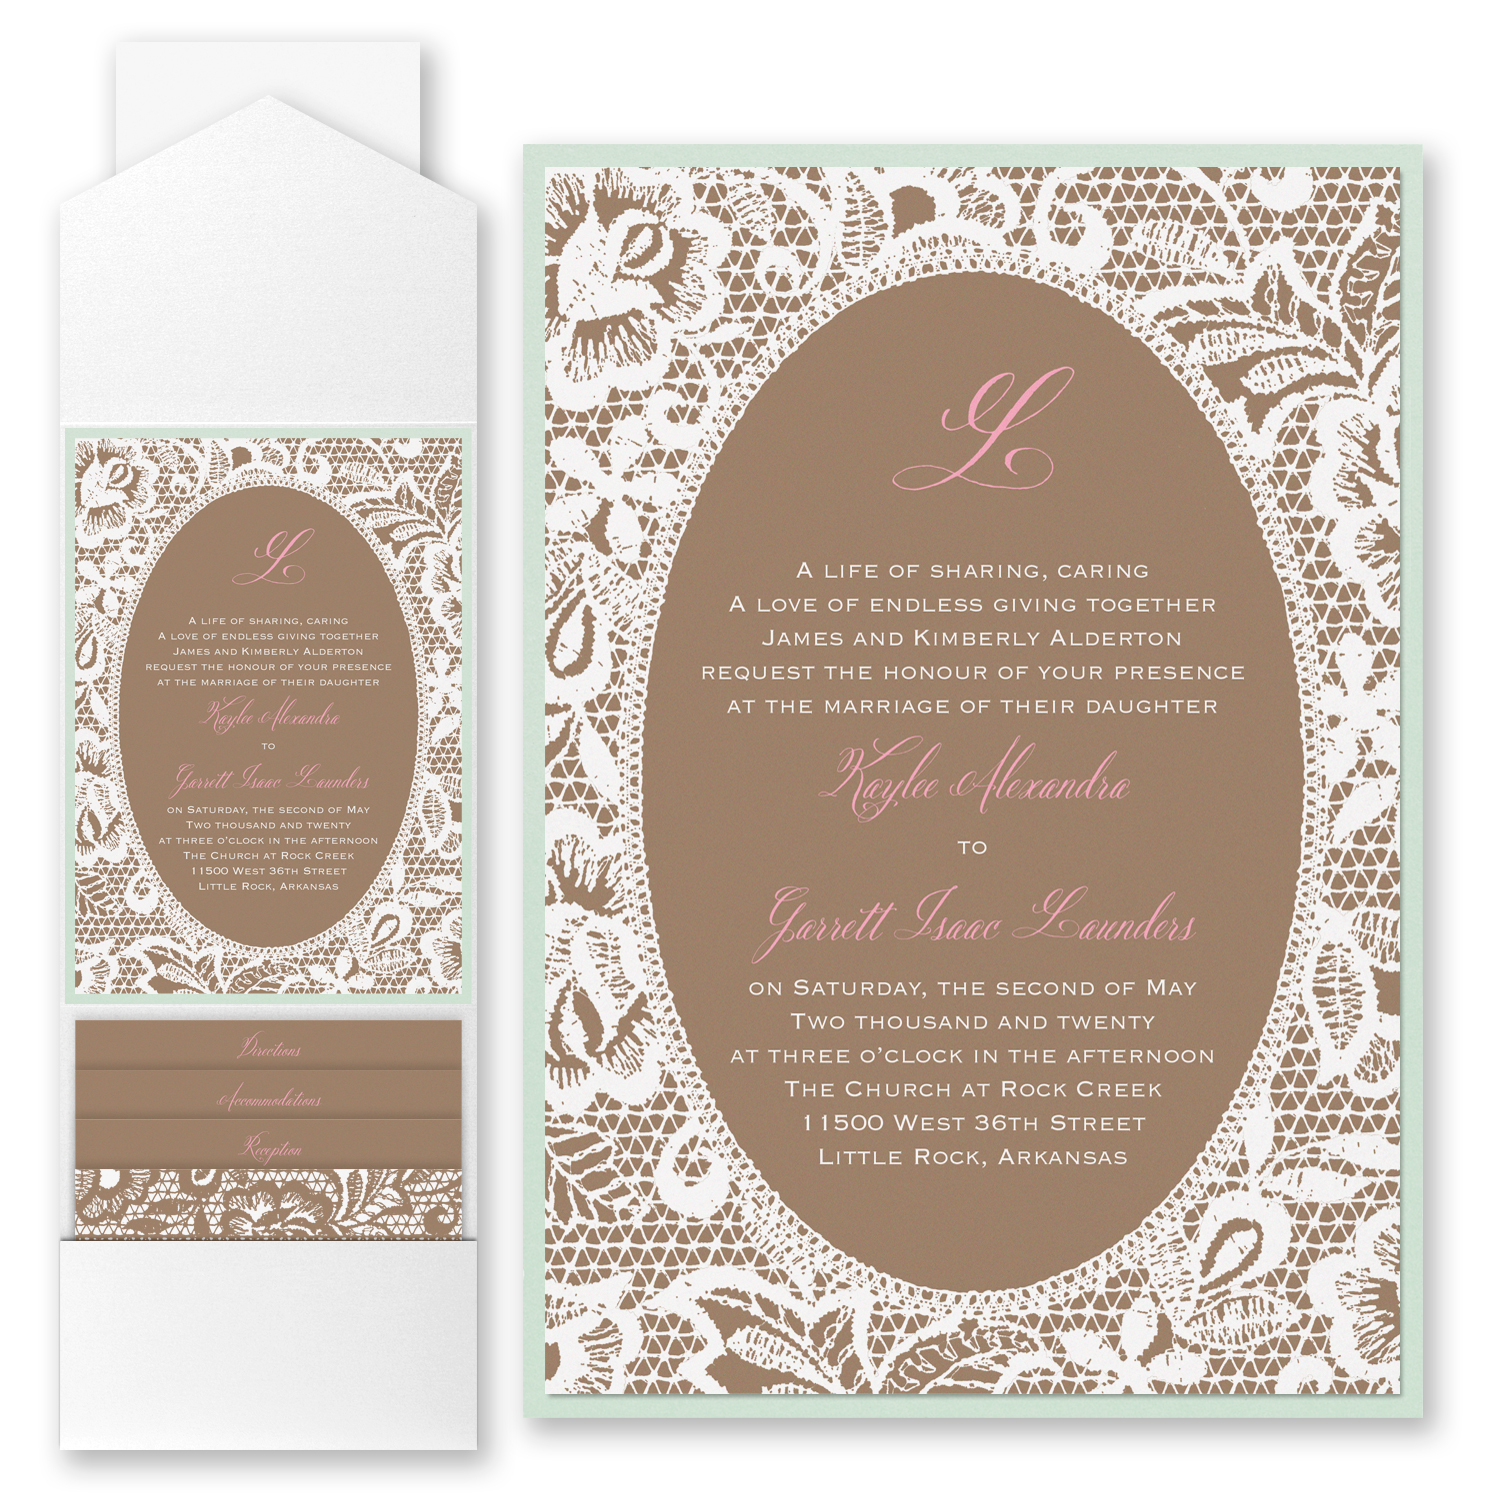 Lace Pocket Invitation